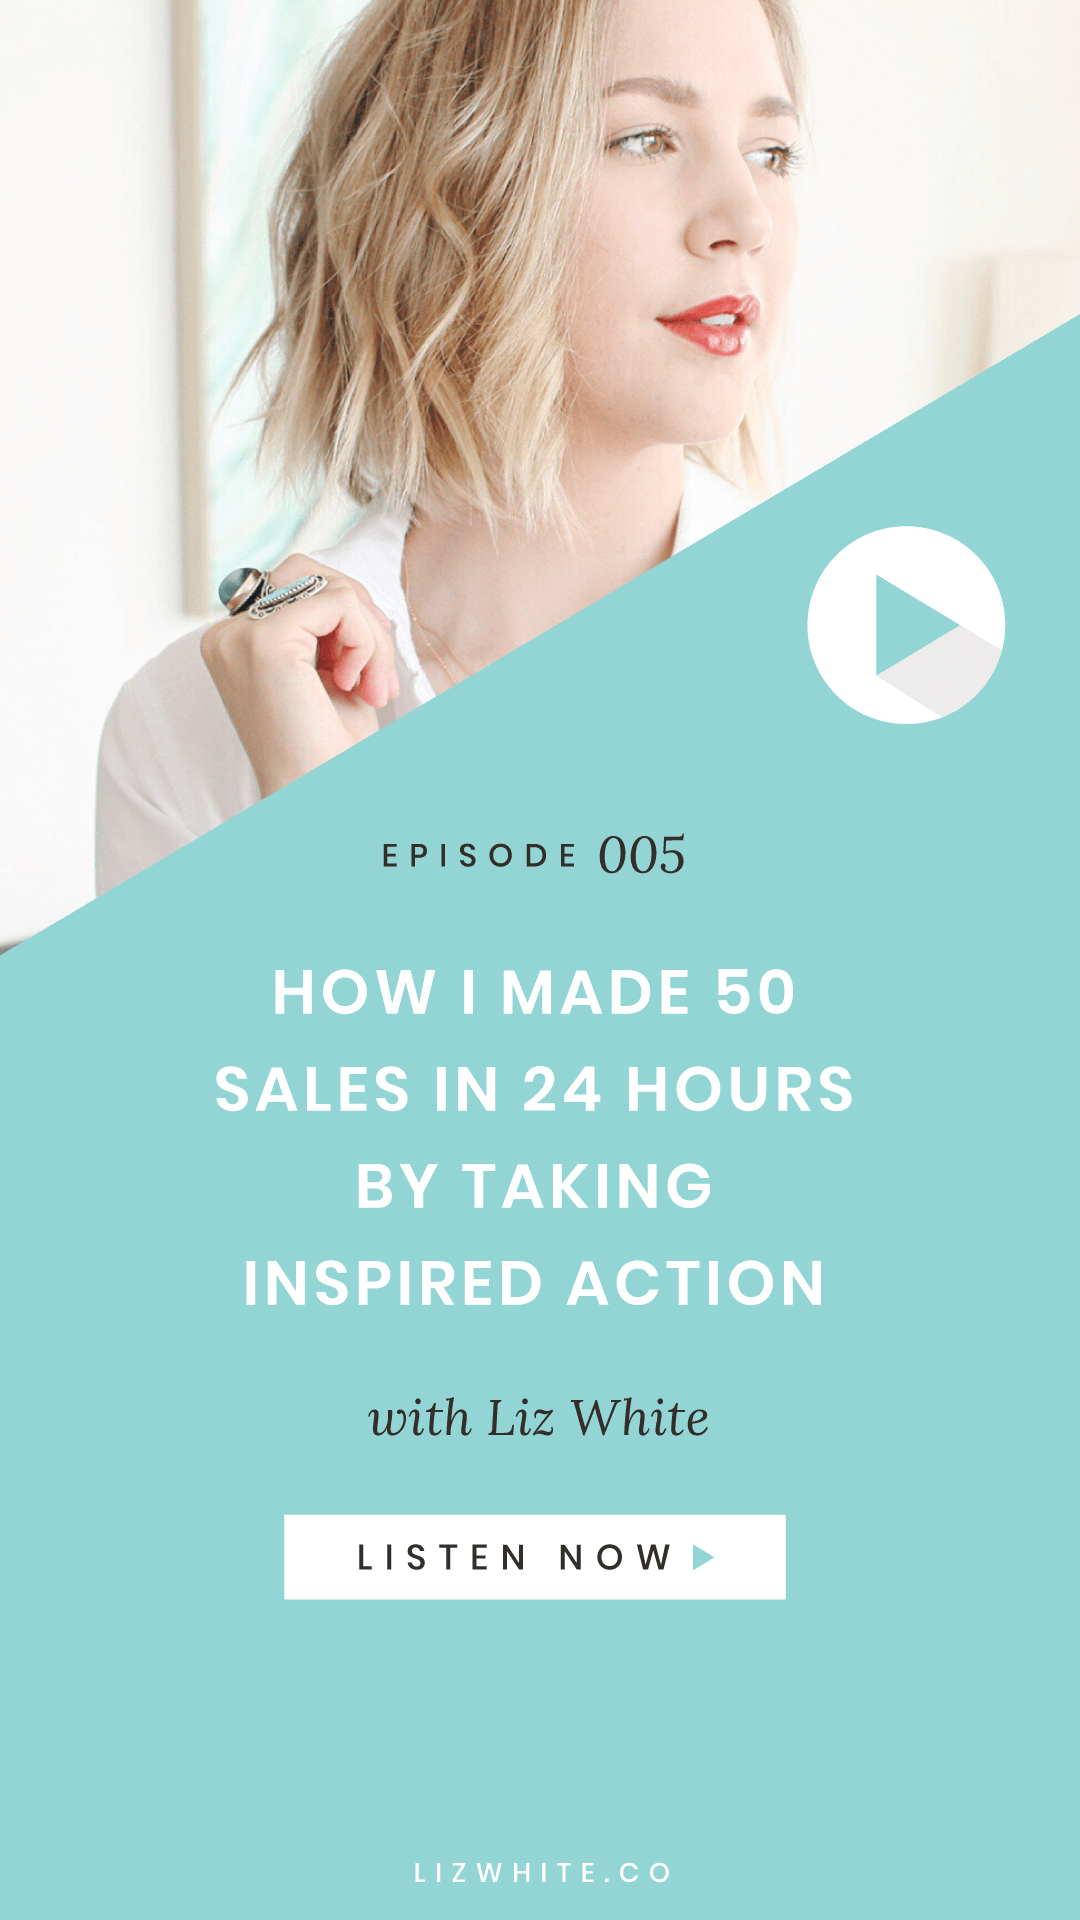 Let's talk taking inspired action! My new motto for my life and business is this: how easy can this be? Taking inspired action is just that. Listening to your intuition about what next steps you could take and immediately acting on them to #makeithappen.